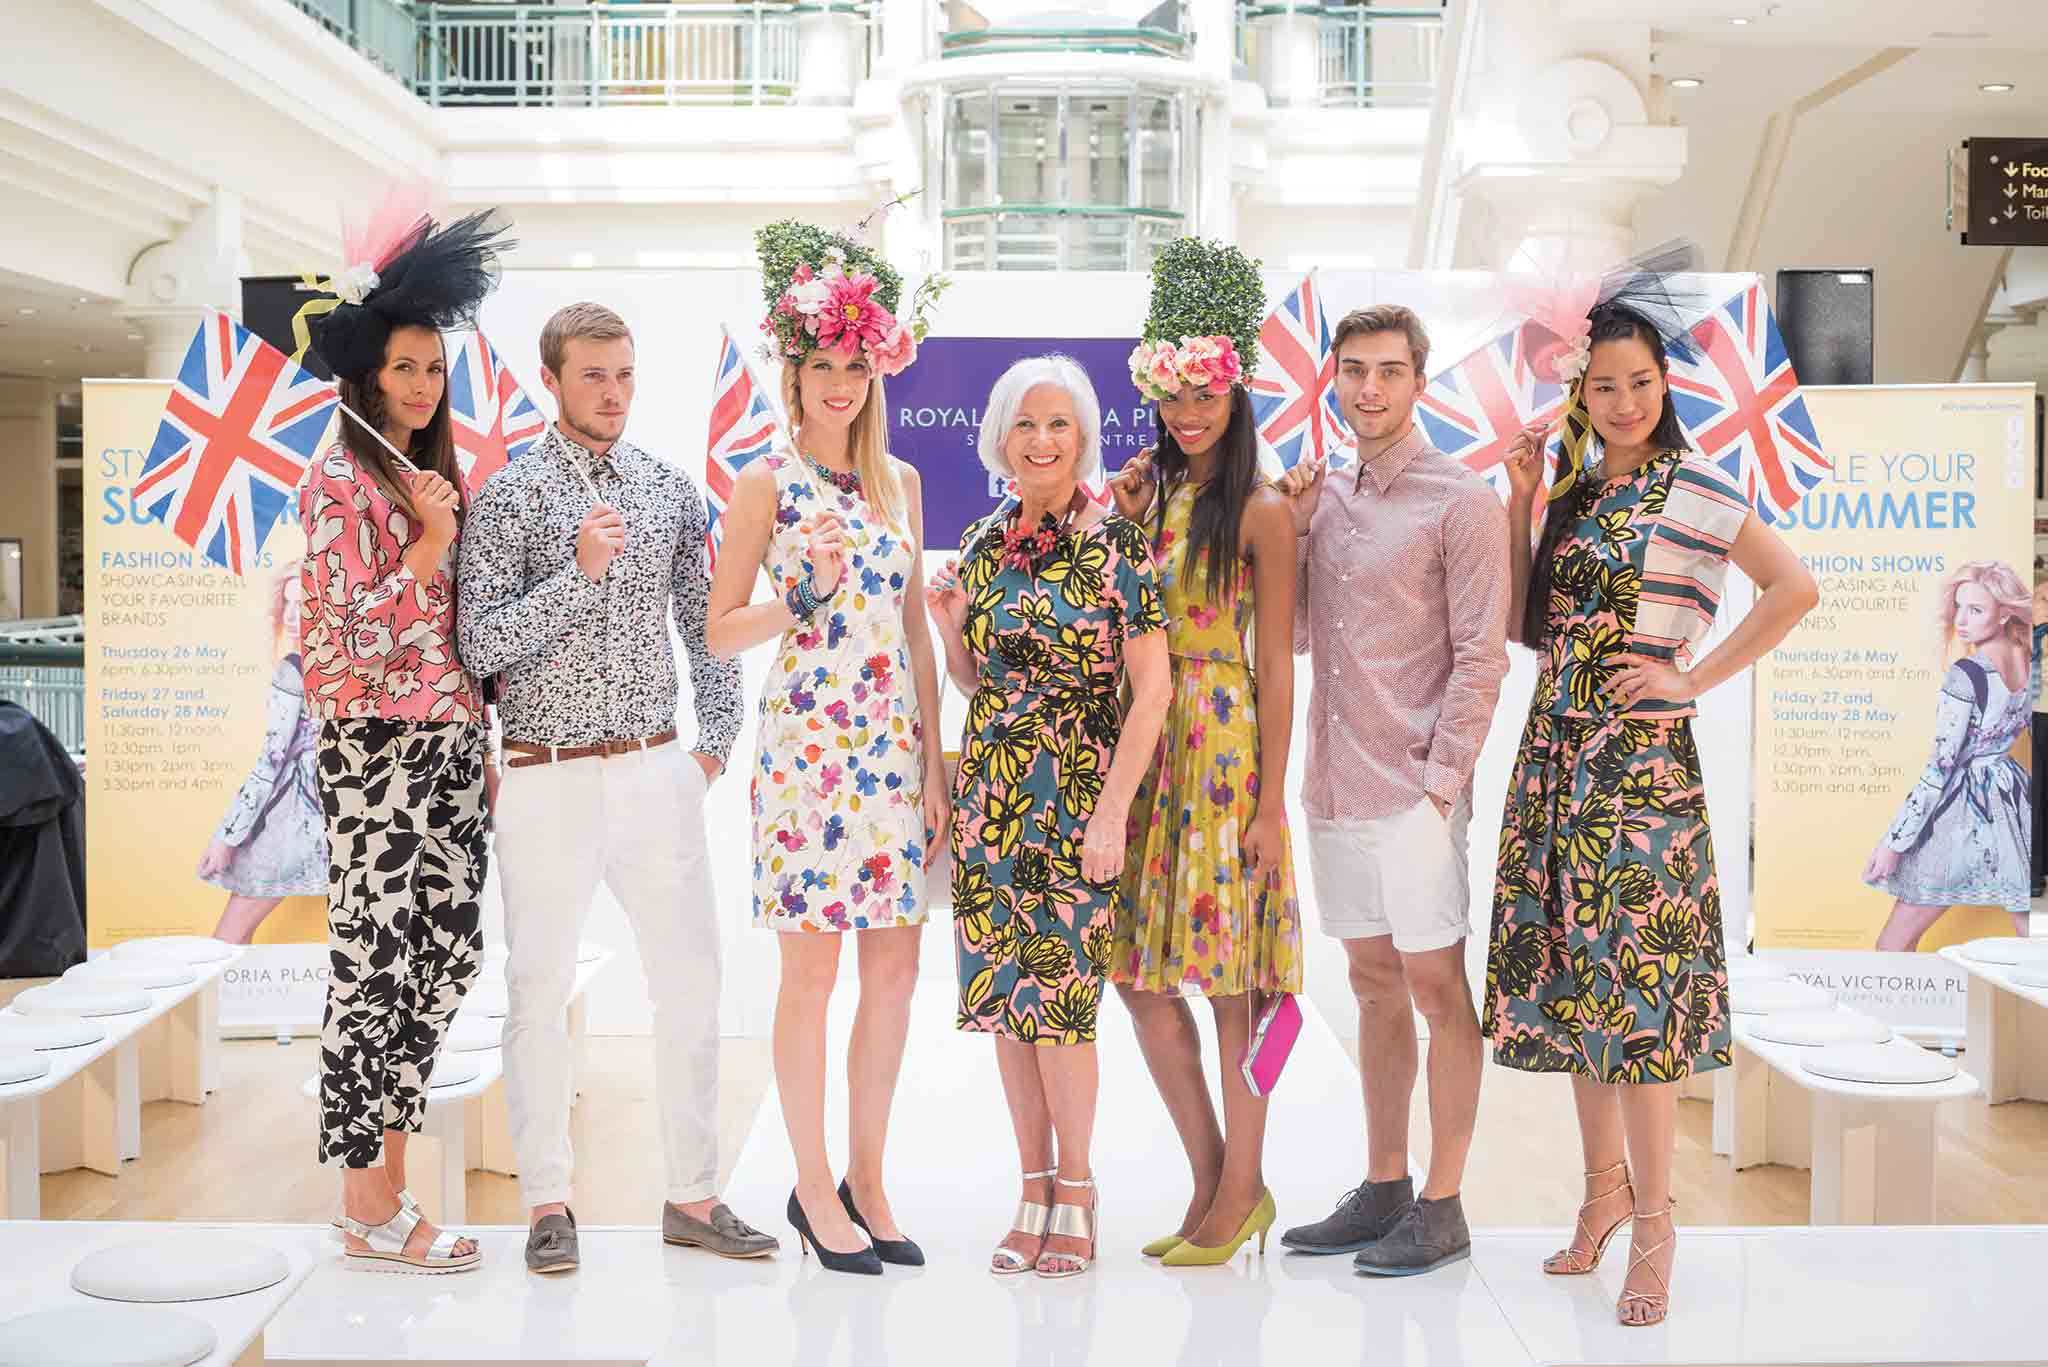 Royal Victoria Place Style Your Summer